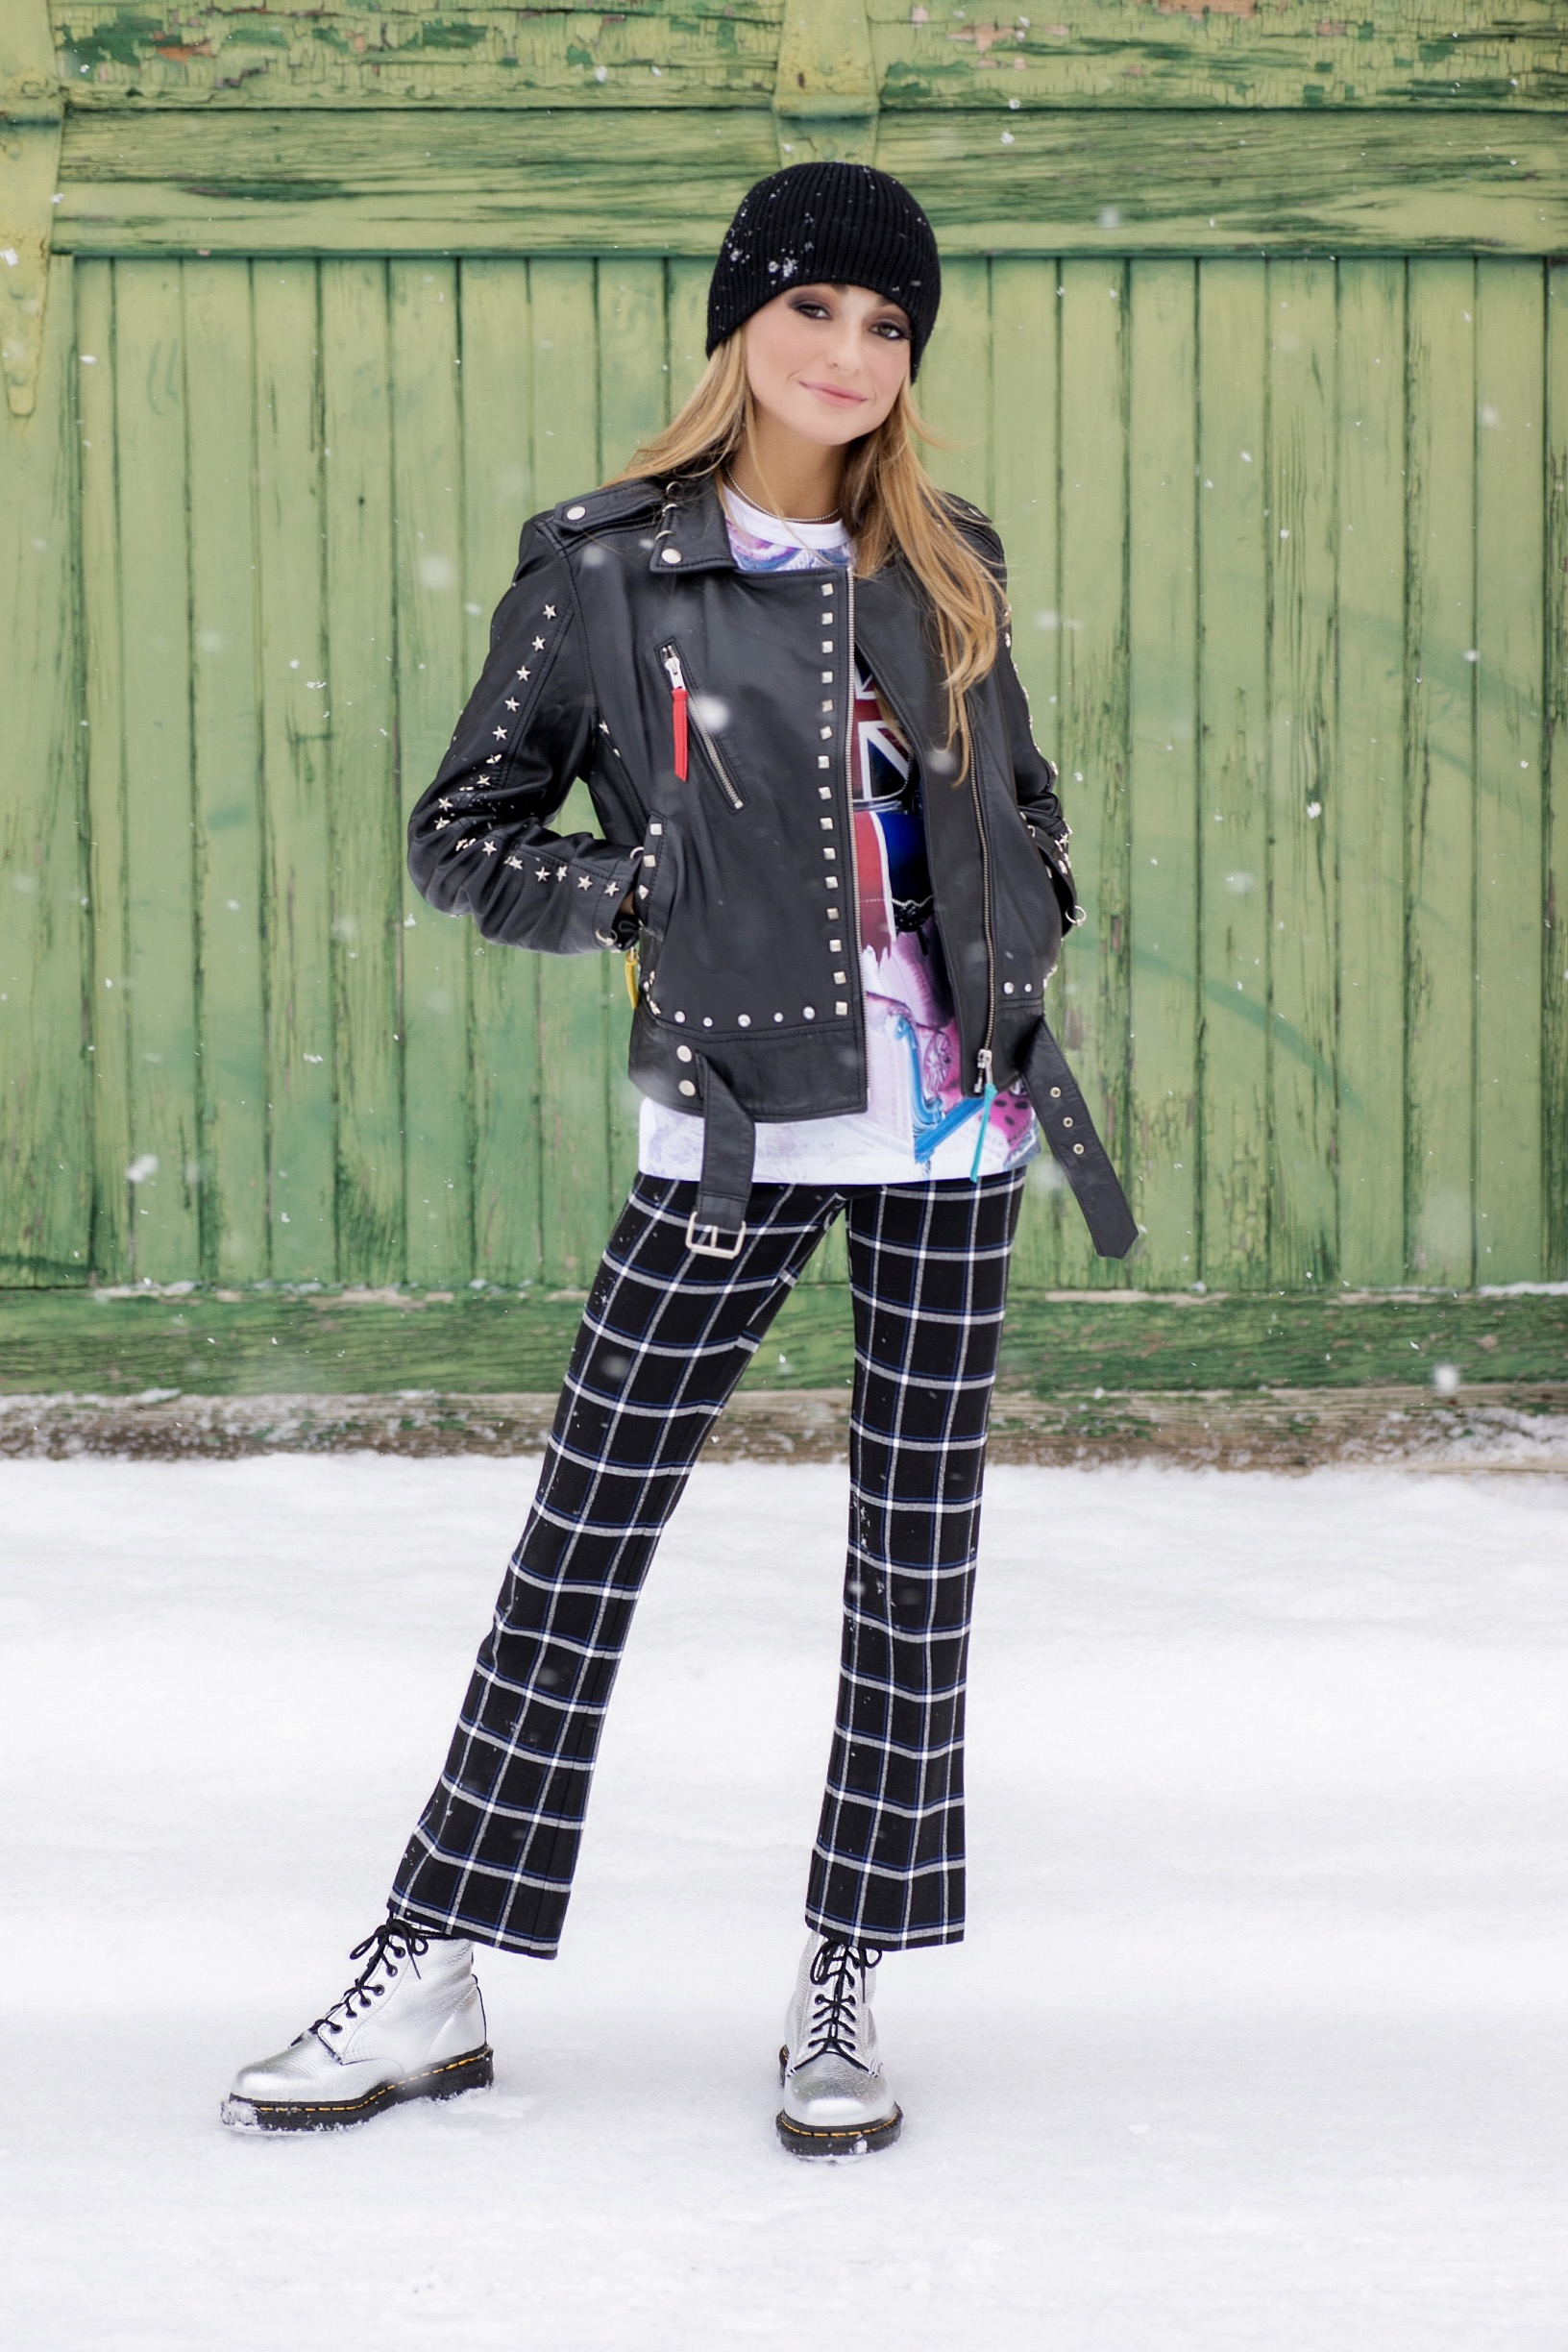 Nicole Miller leather jacket worn with Derek Lam 10 crosby checkered trousers